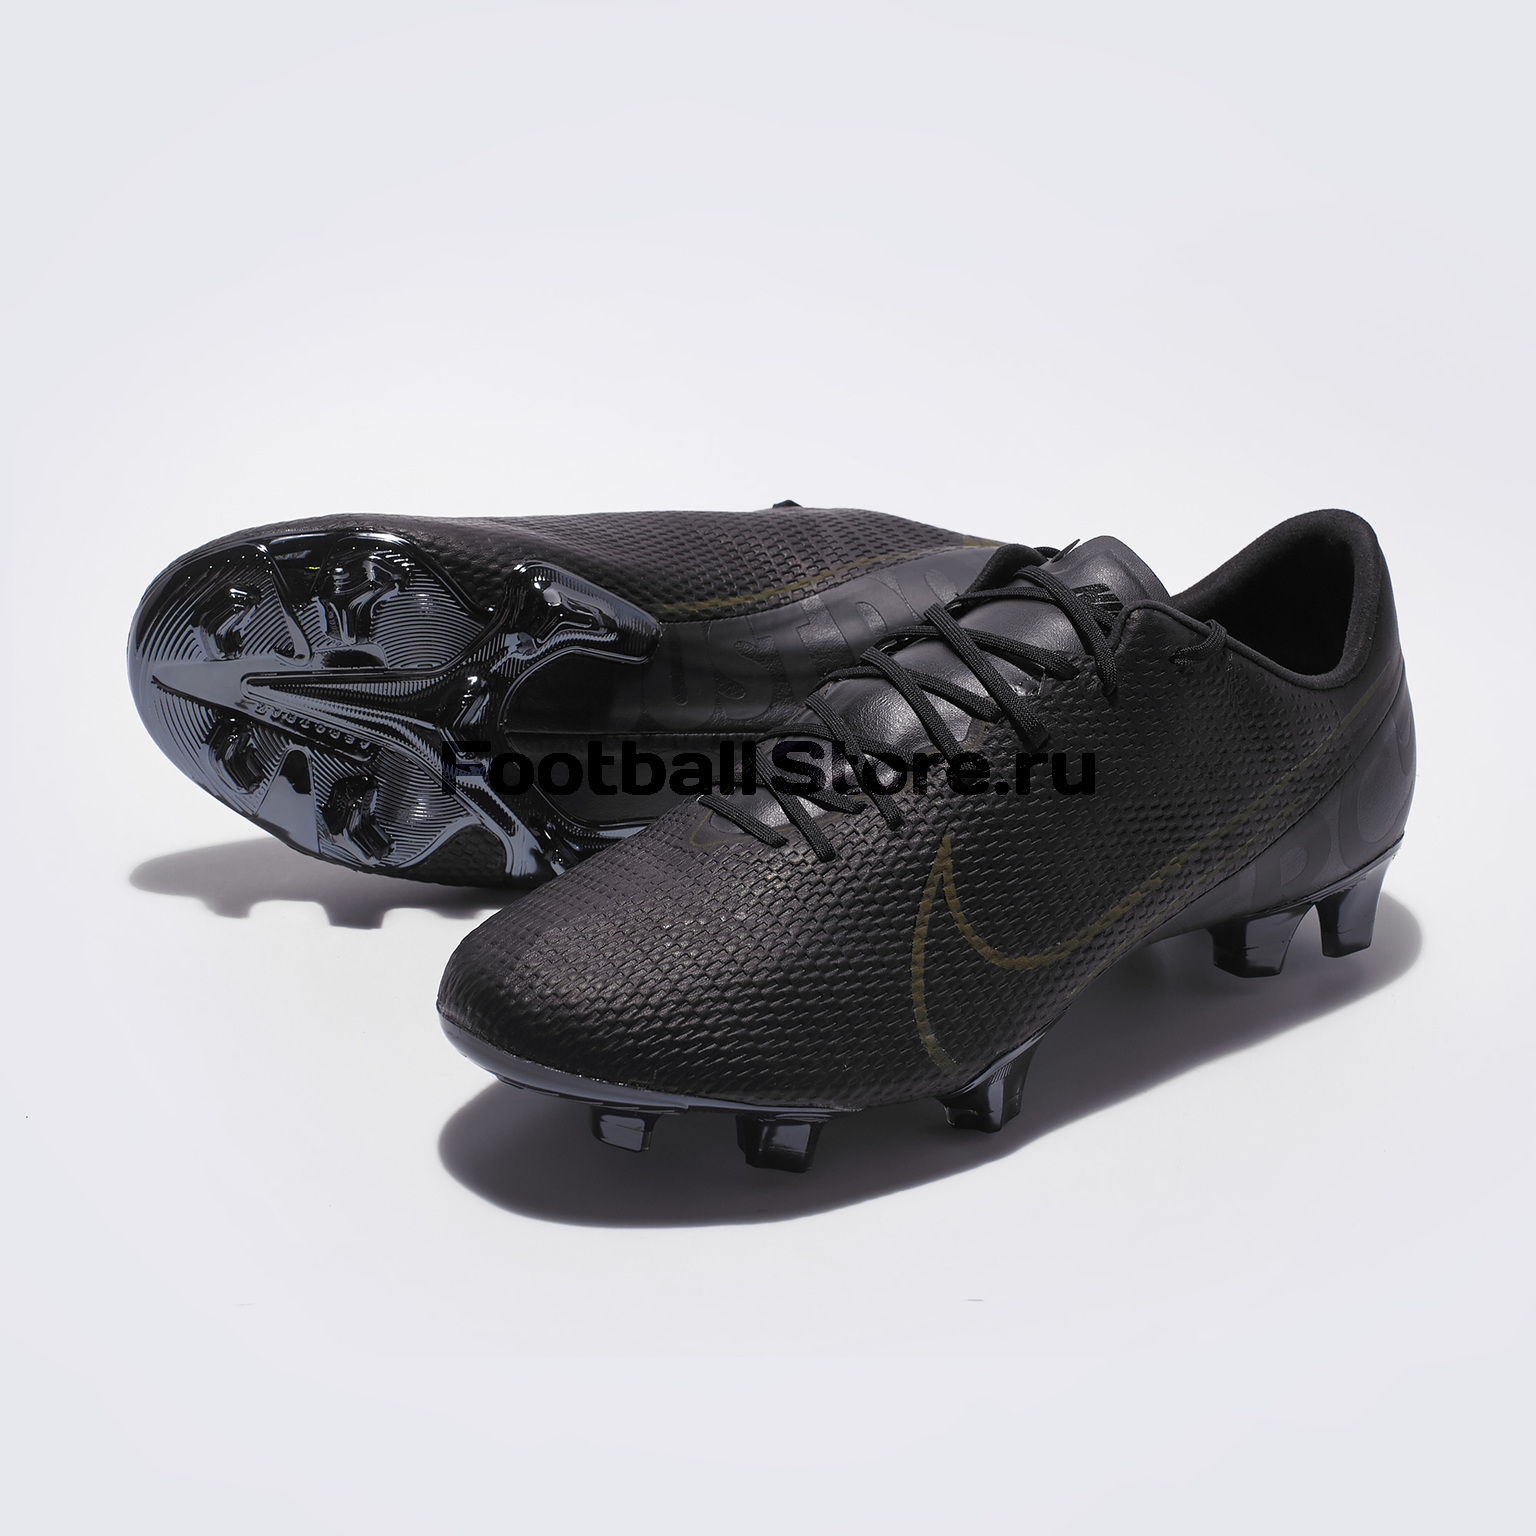 цена на Бутсы Nike Vapor 13 Elite TC FG CJ6320-001